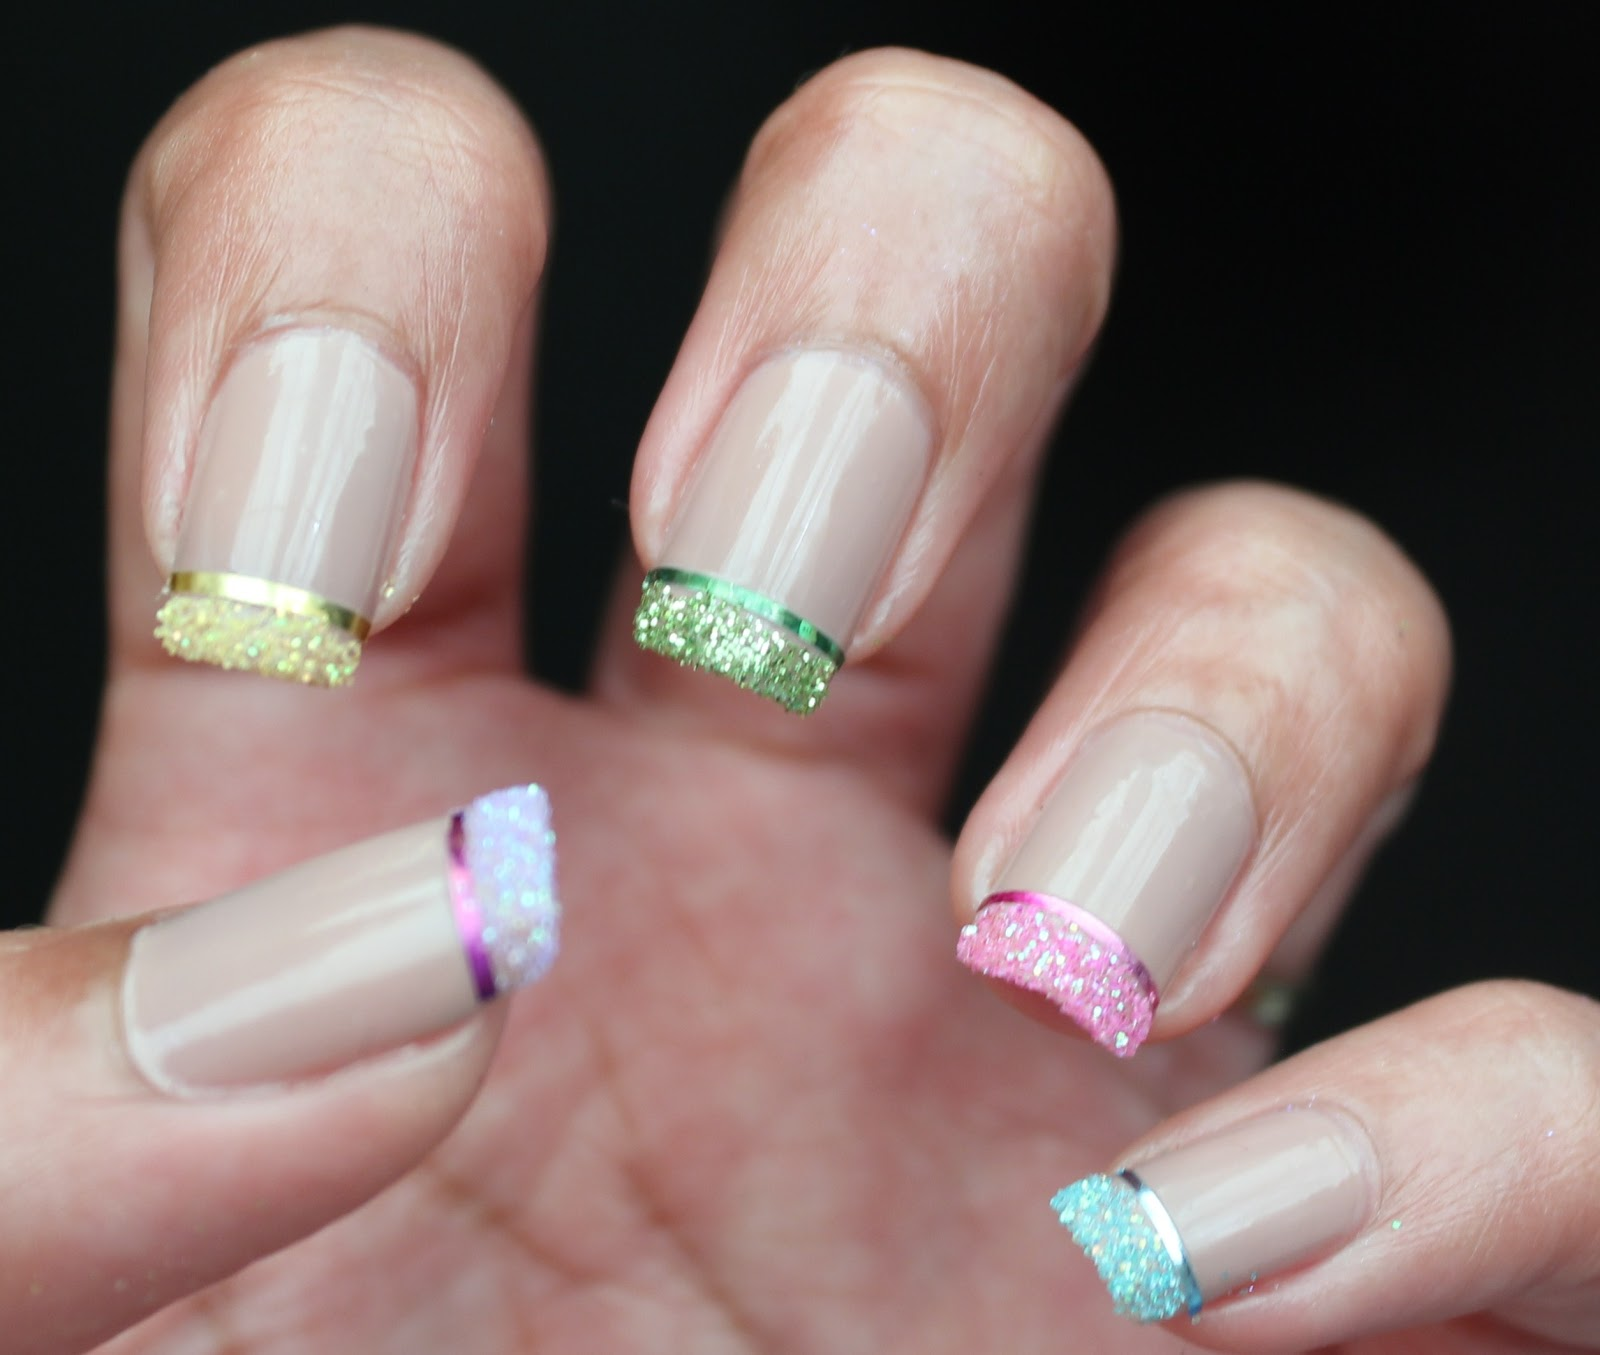 Nail Art Tips Pictures: Nail Art Glamorously Done: Glittered Foiled Tips